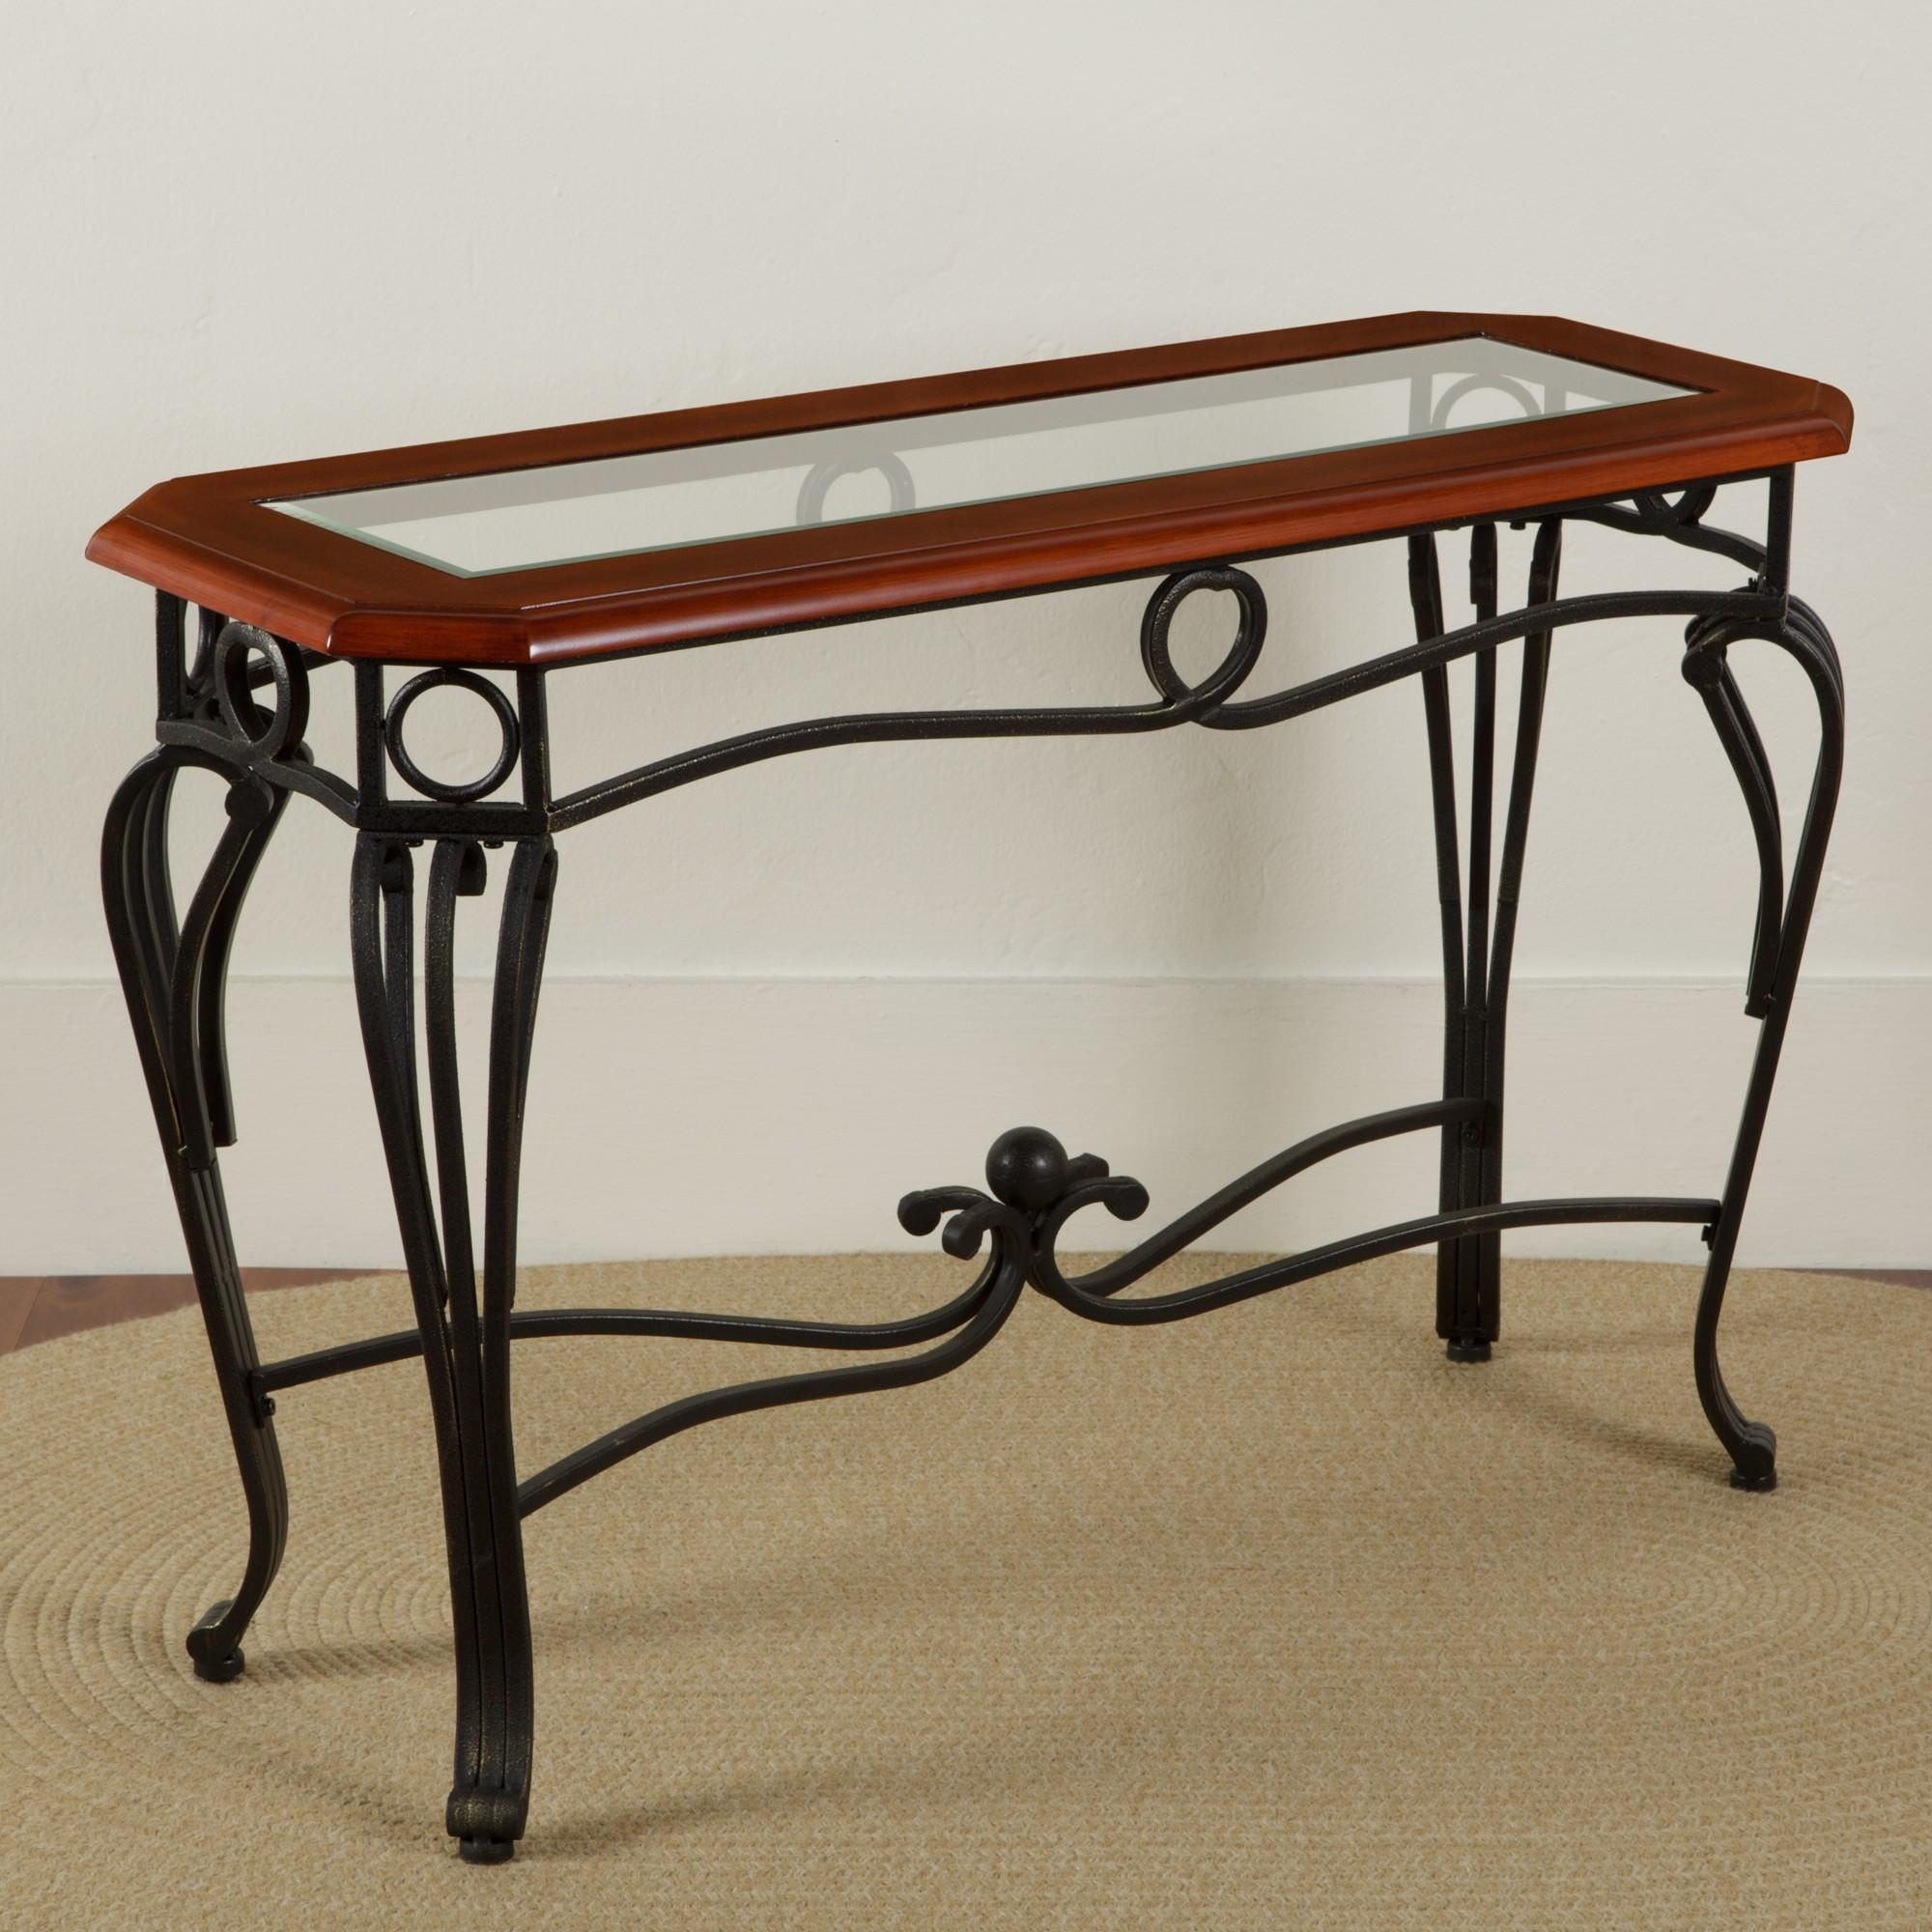 Scrolled Iron Glass Sofa Table | Sturbridge Yankee Workshop For Metal Glass Sofa Tables (Image 14 of 22)